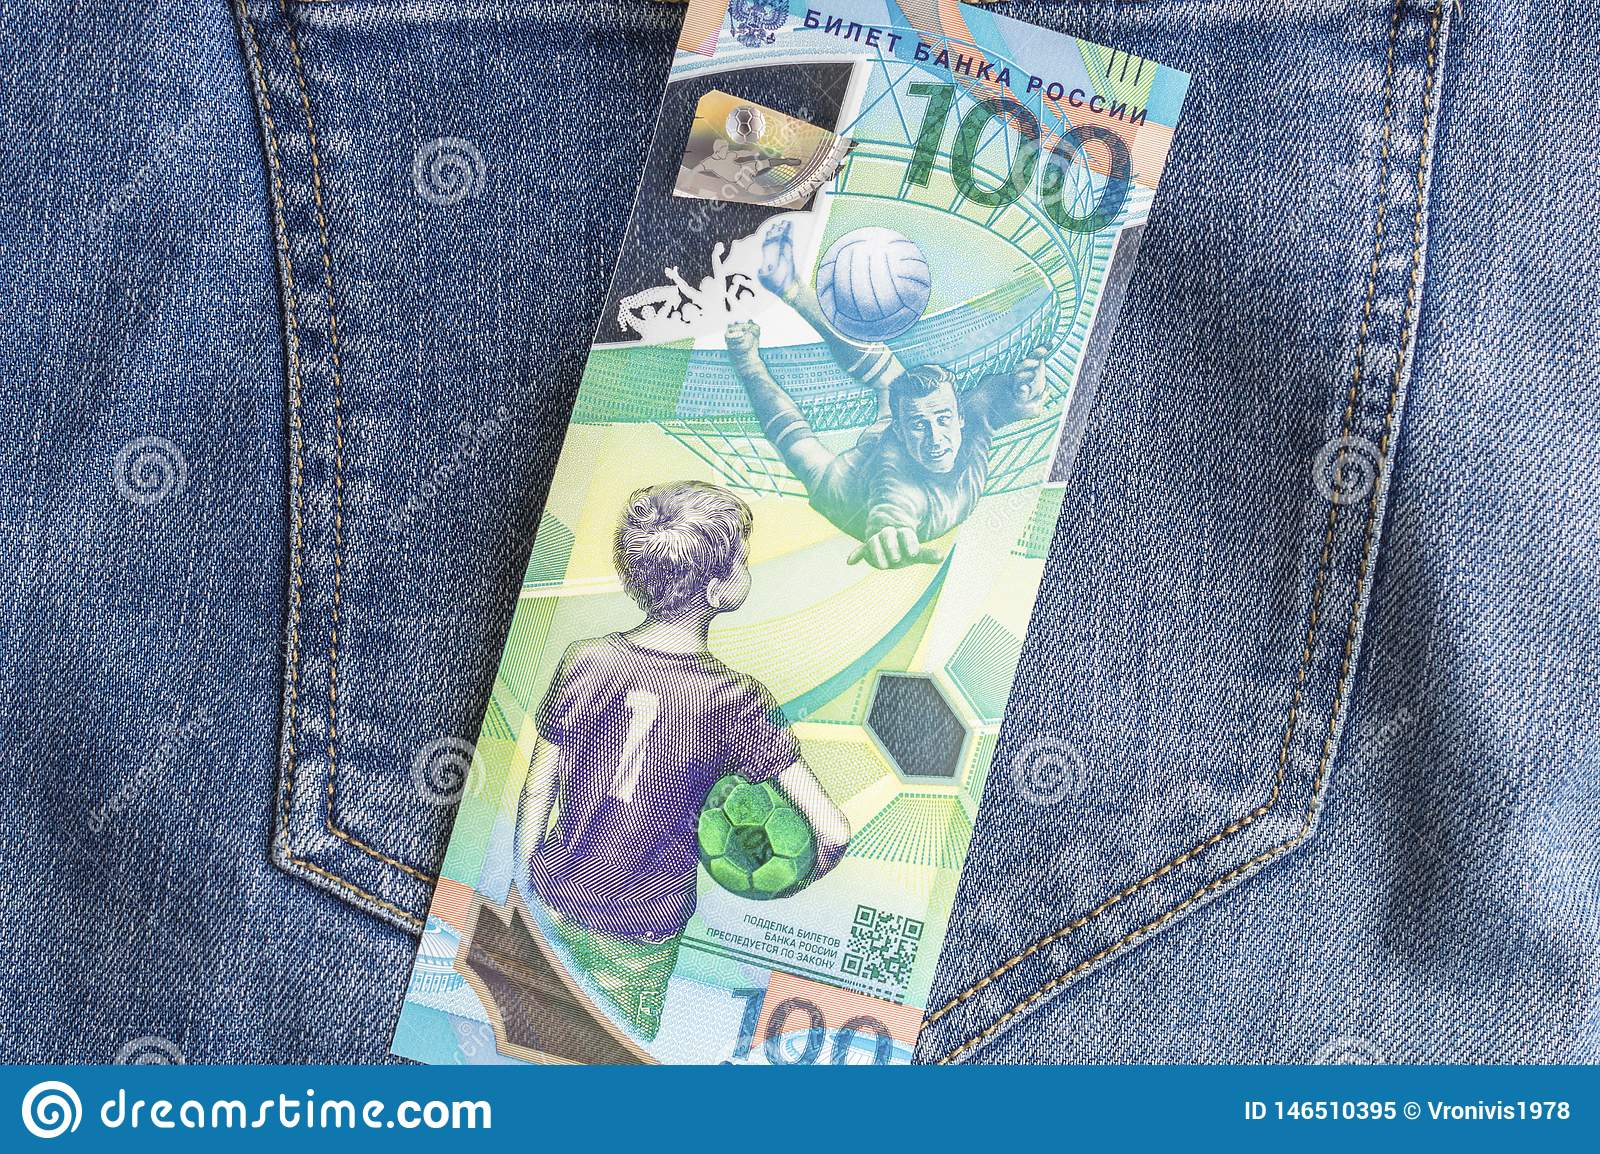 04.21.2019 Severodvinsk. Russia. Russian jubilee banknotes of FIFA 2018 soccer world cup 100 rubles on jeans background